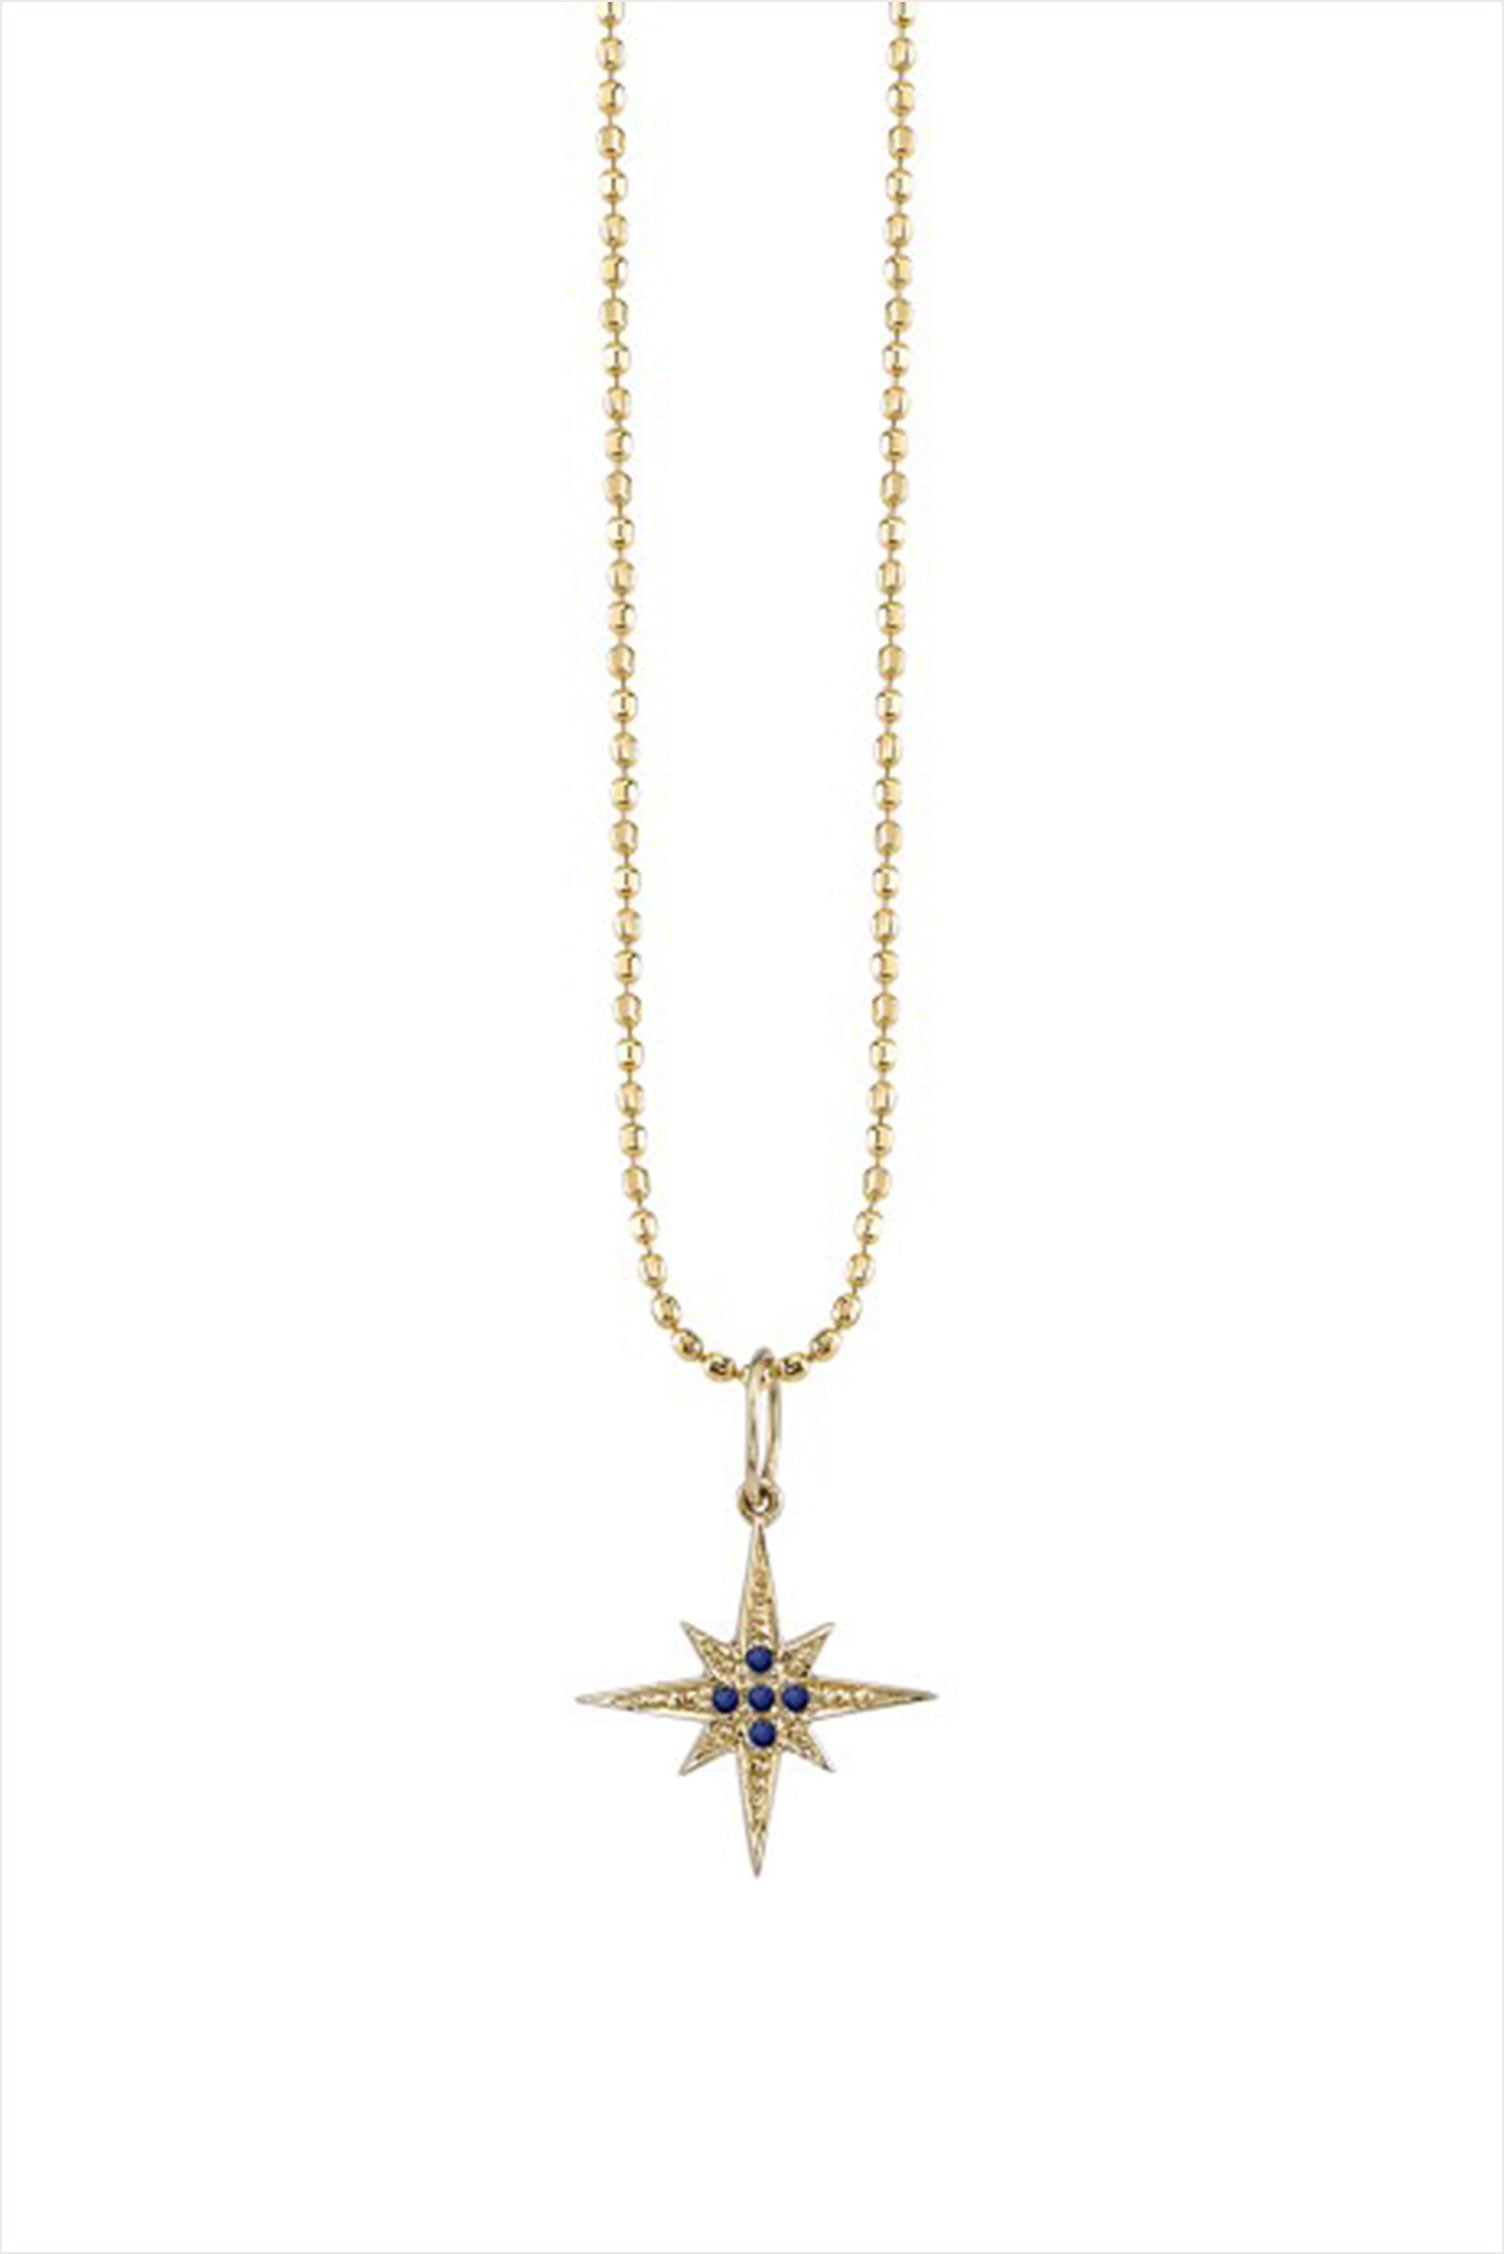 Small Starburst Necklace with Pave Sapphire